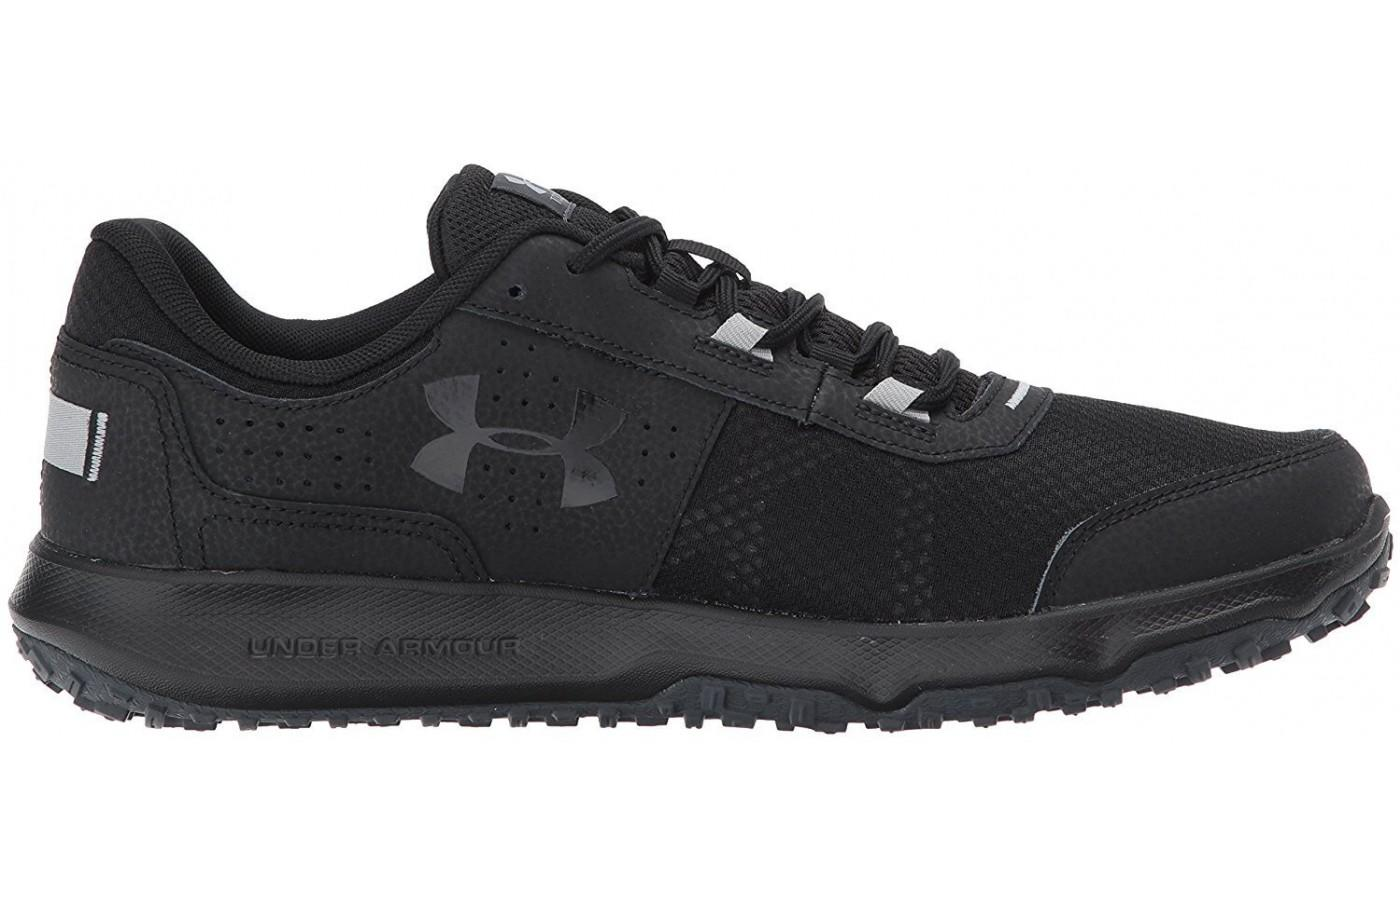 4375297a2788 EVA foam in the Under Armour Toccoa s midsole provides dense cushioning.